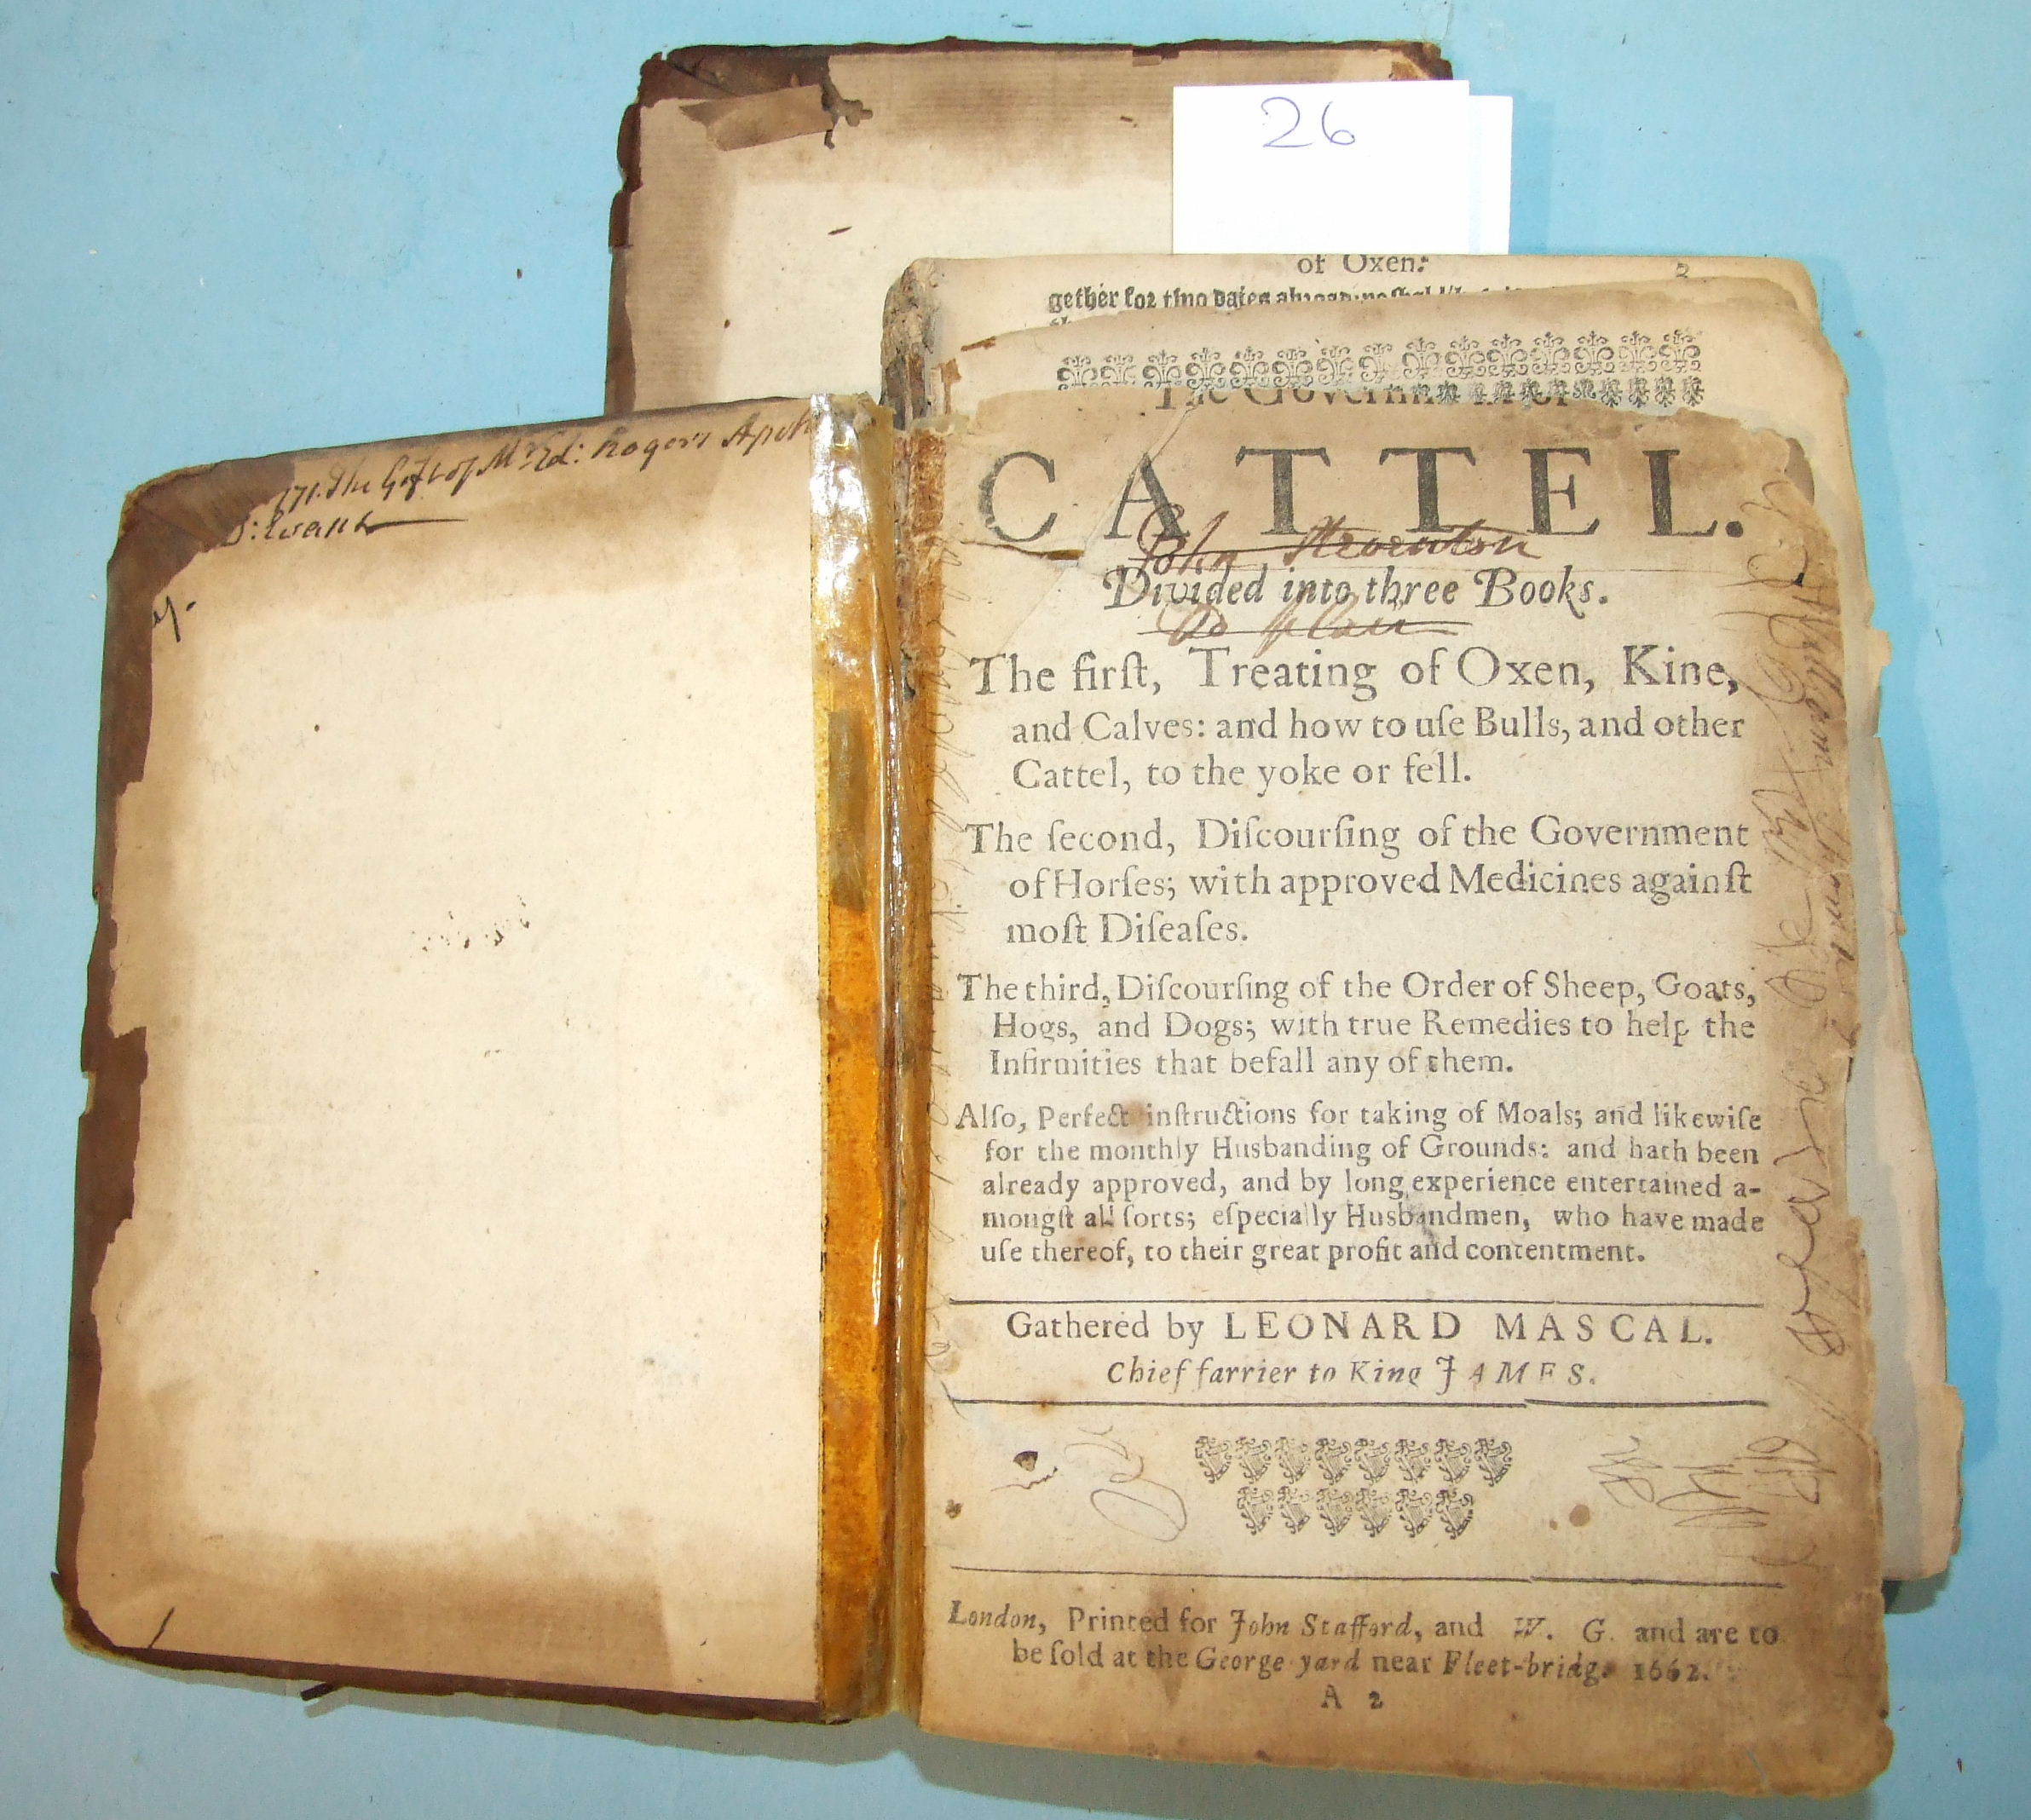 Lot 34 - Mascal (Leonard), The Government of Cattel Divided into Three Books, all three present and dated